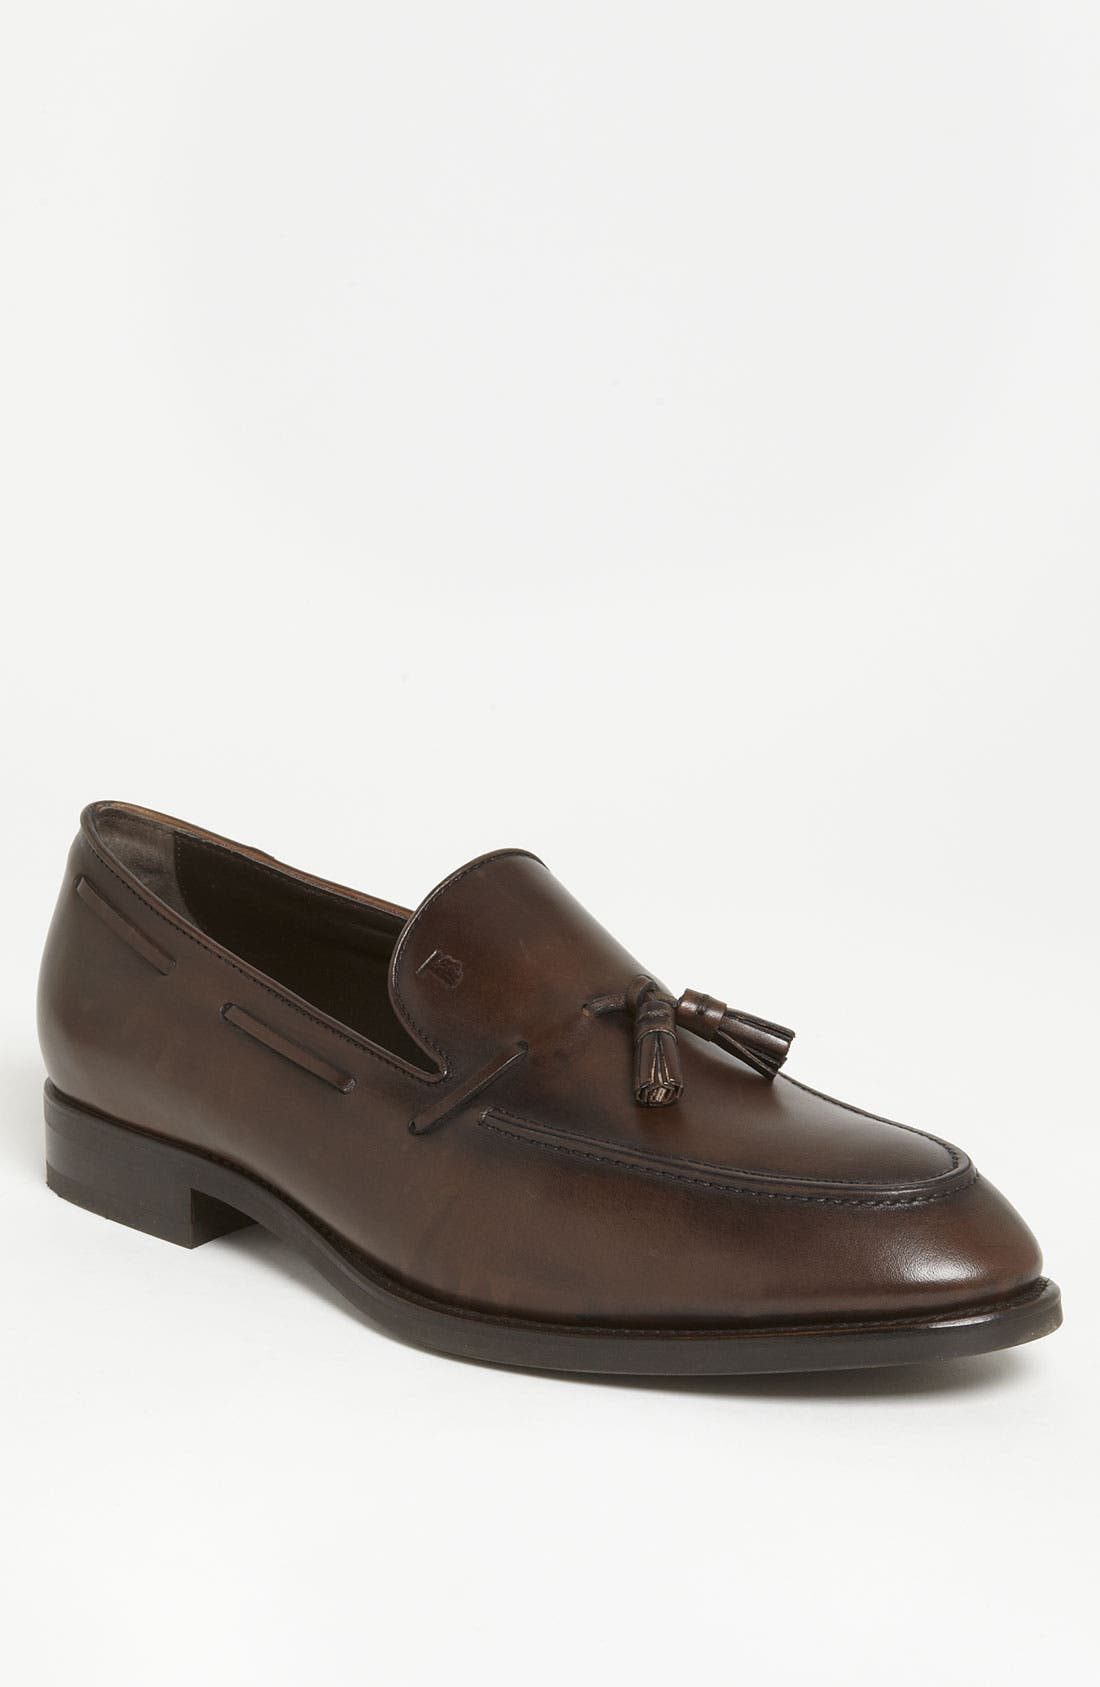 Main Image - Tod's Tassel Loafer